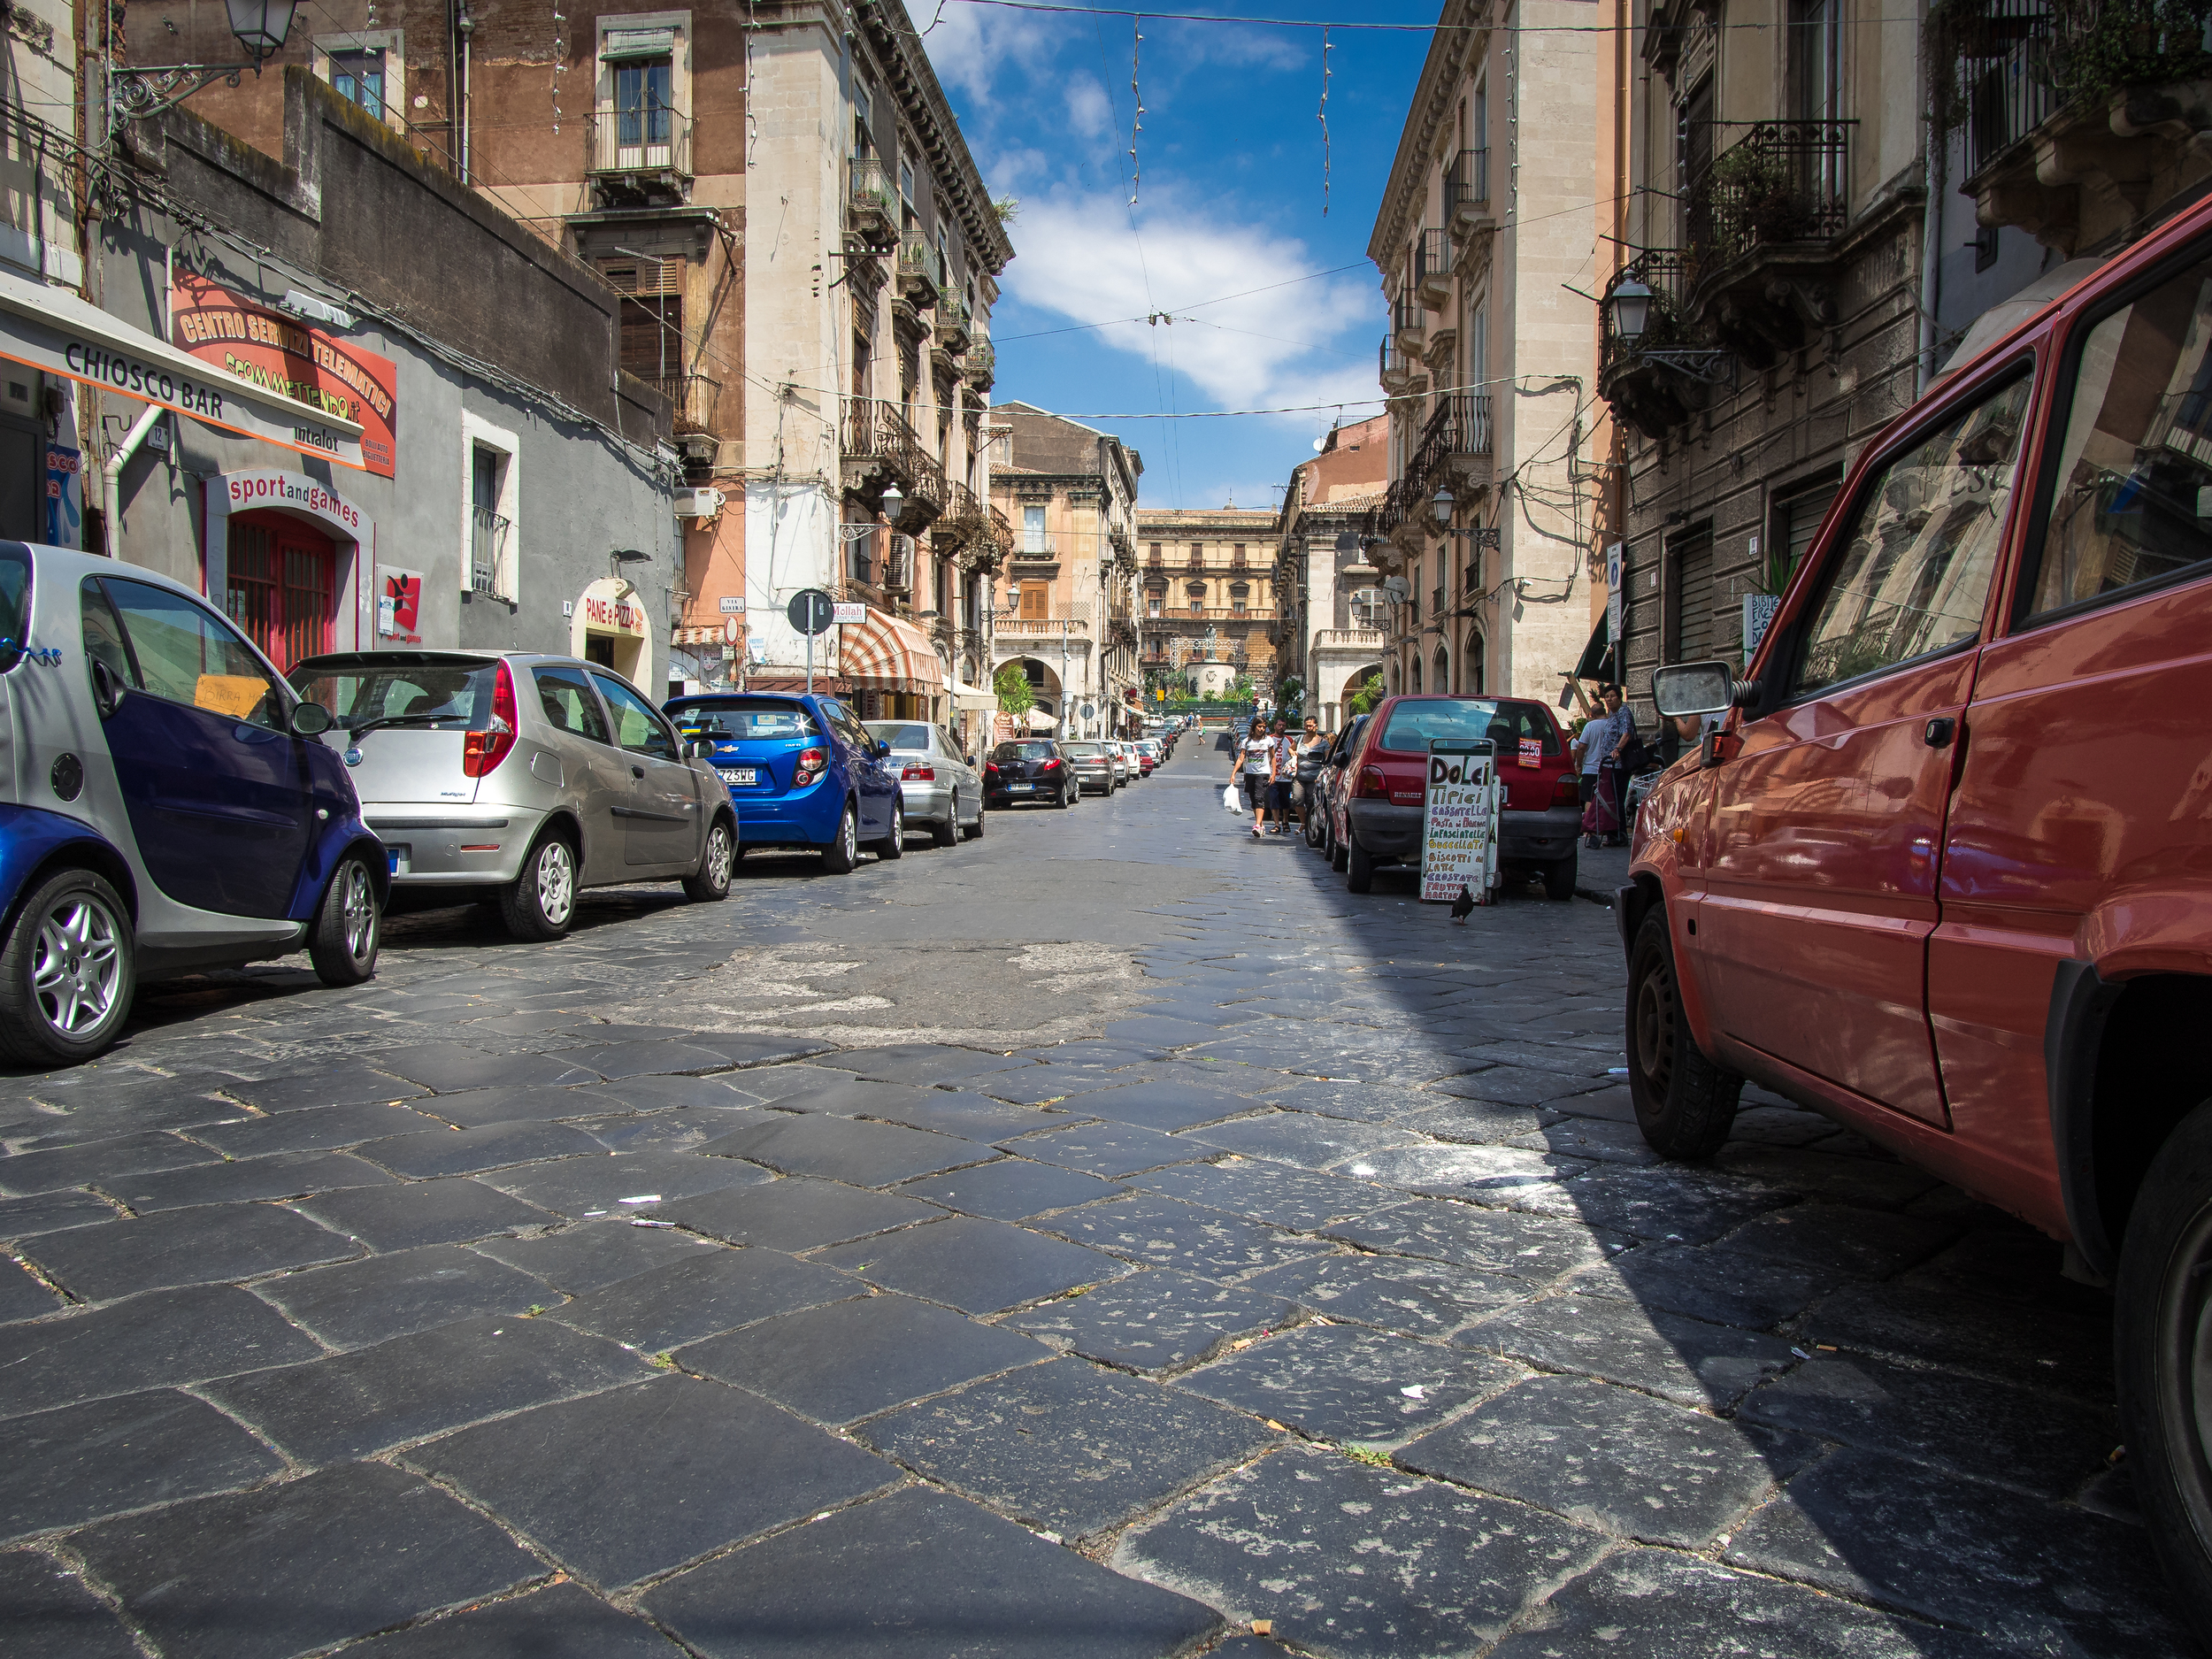 more typical Catania street